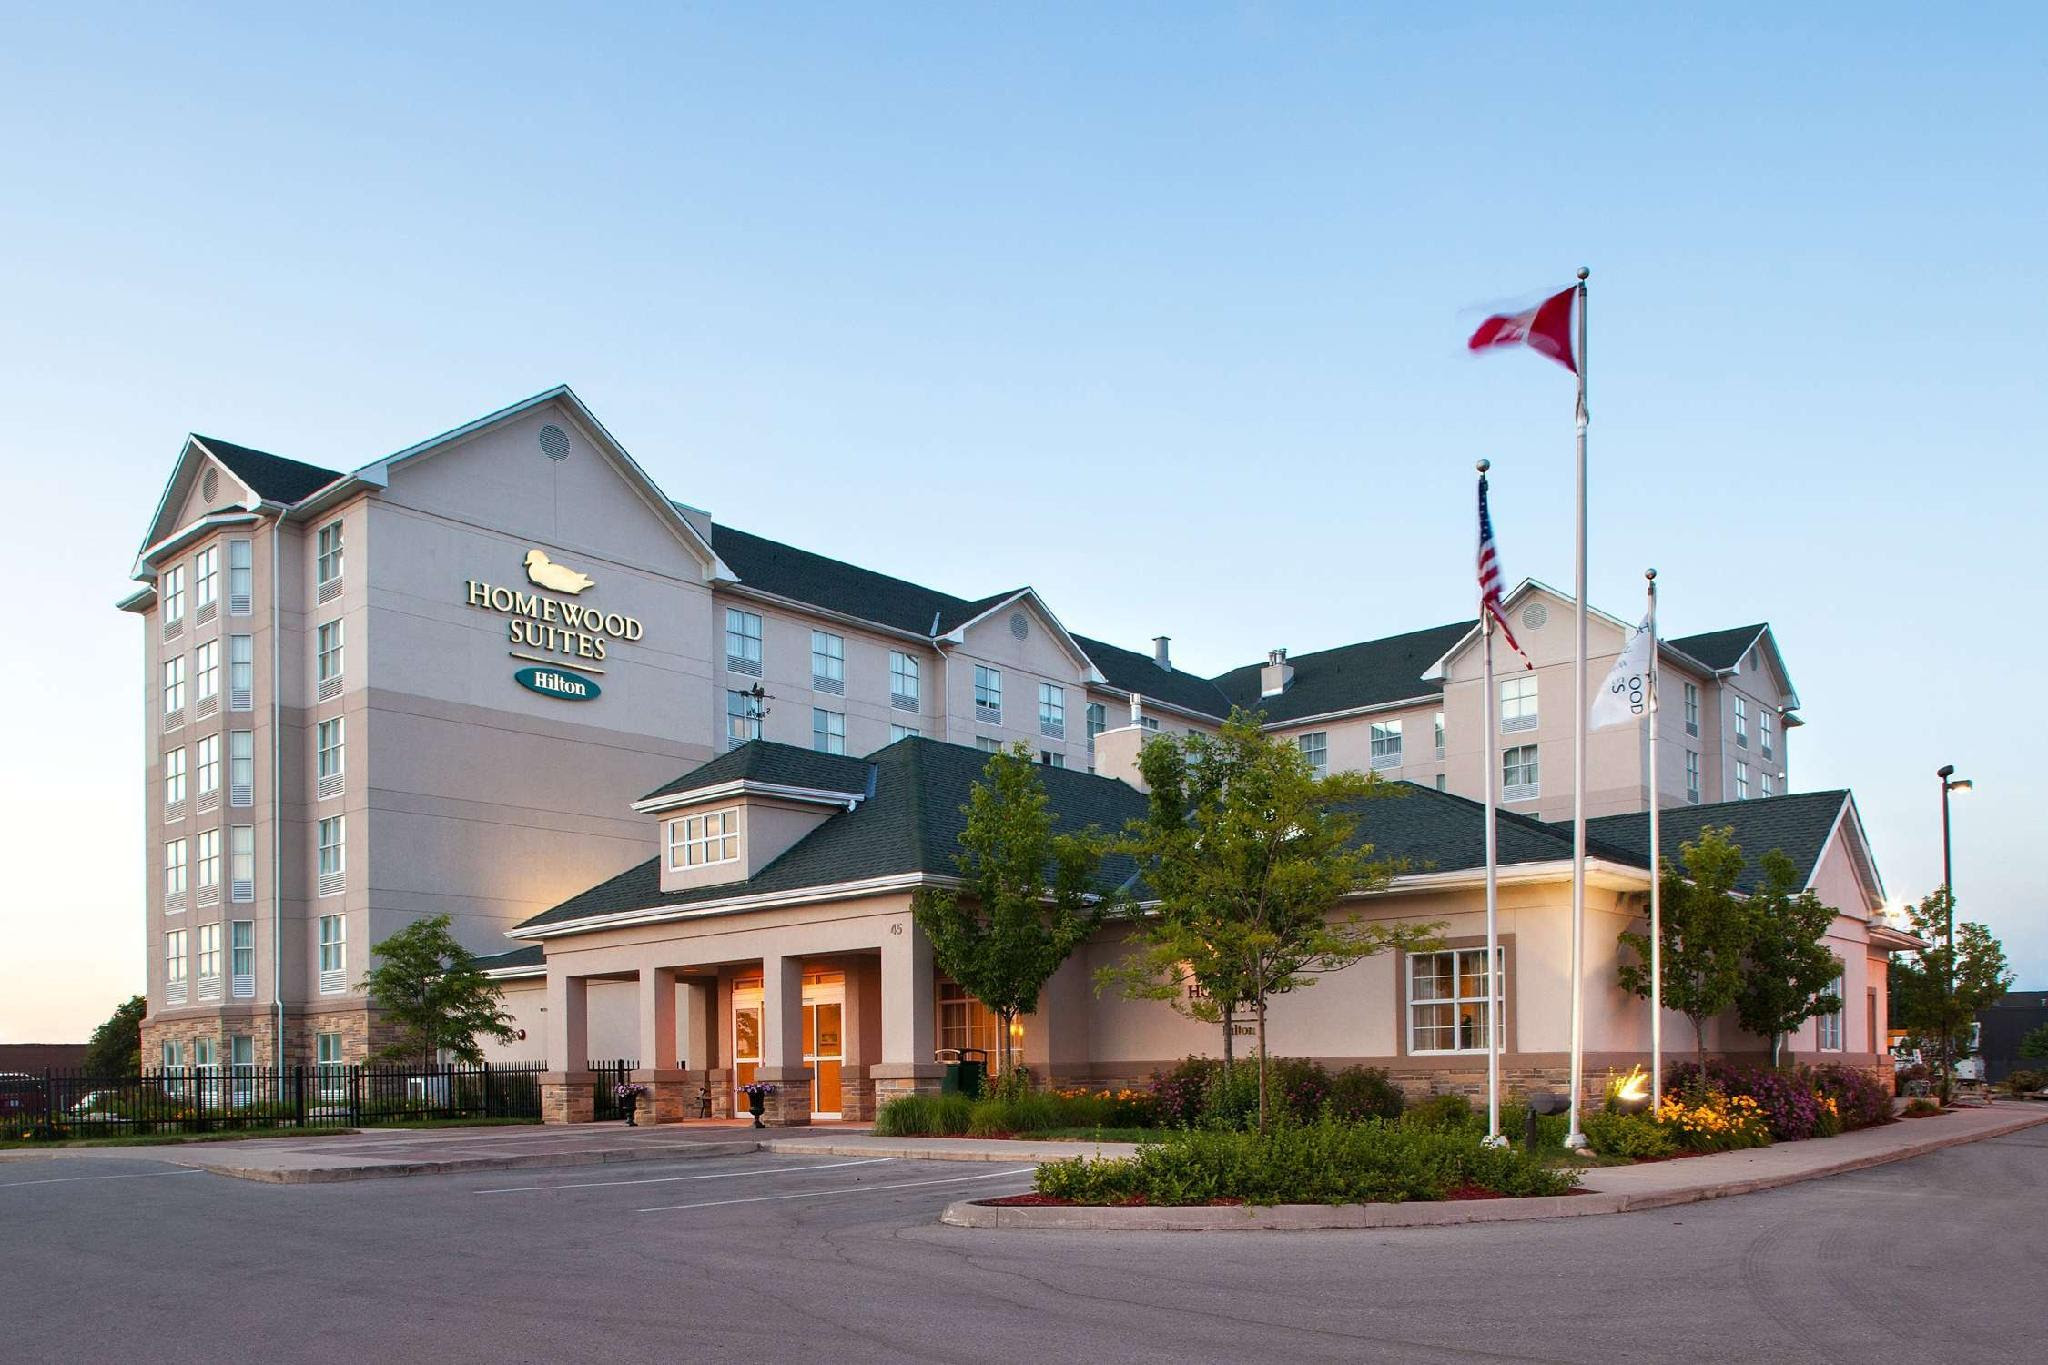 Homewood Suites by Hilton London Ontario Reviews